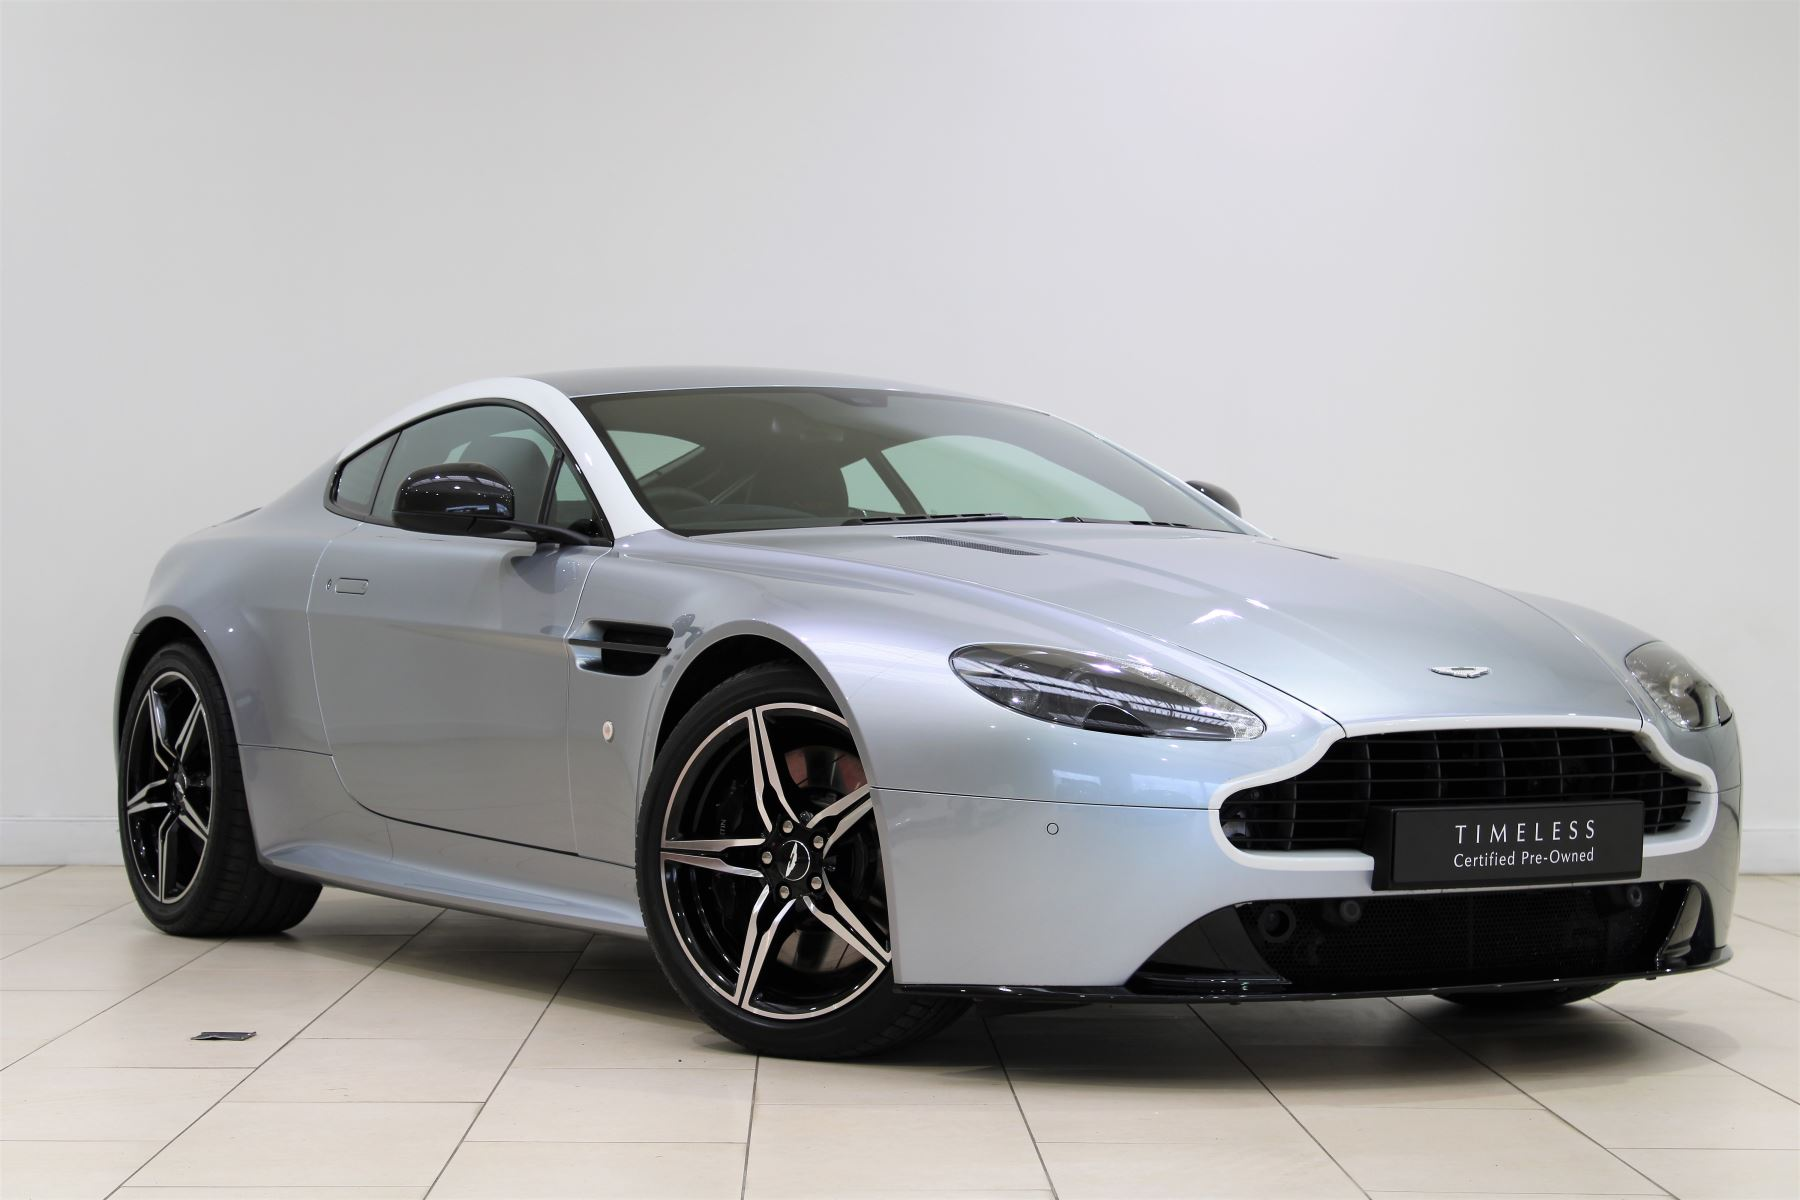 Aston Martin Vantage N430 2dr Sportshift II 4.7 Automatic Coupe (2015)